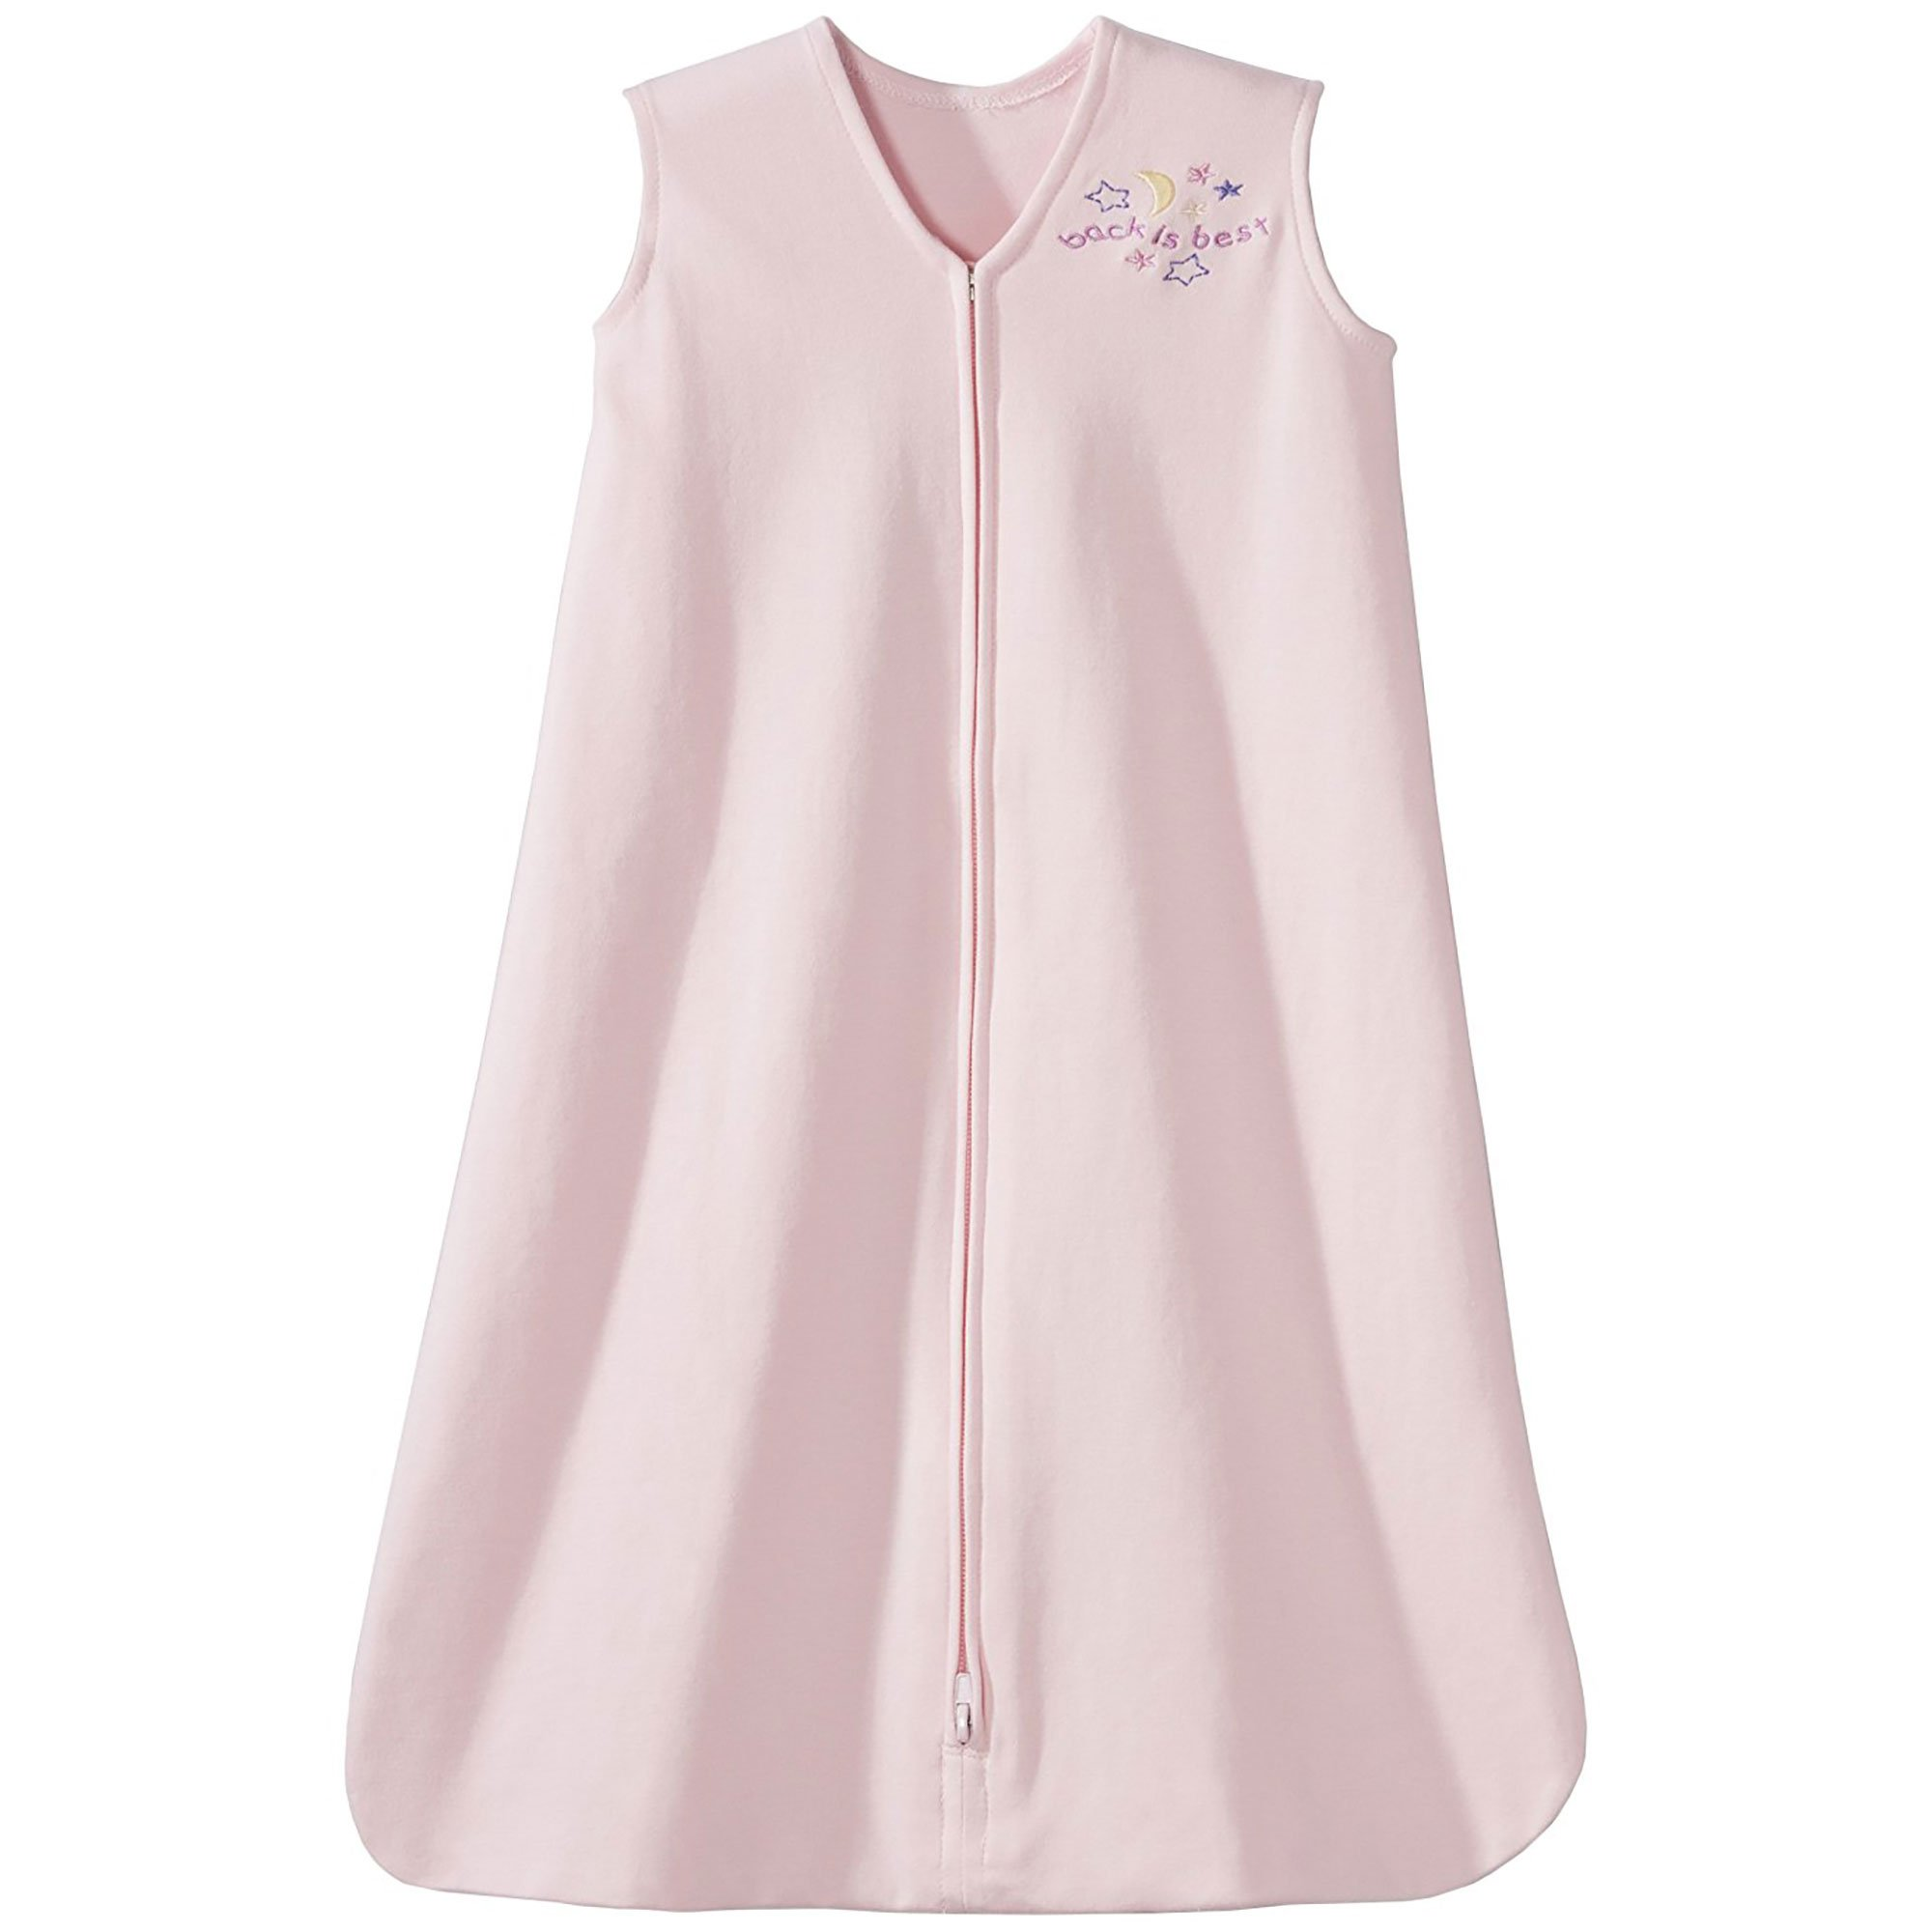 HALO SleepSack 100% Cotton Wearable Blanket, Soft Pink, X-Large